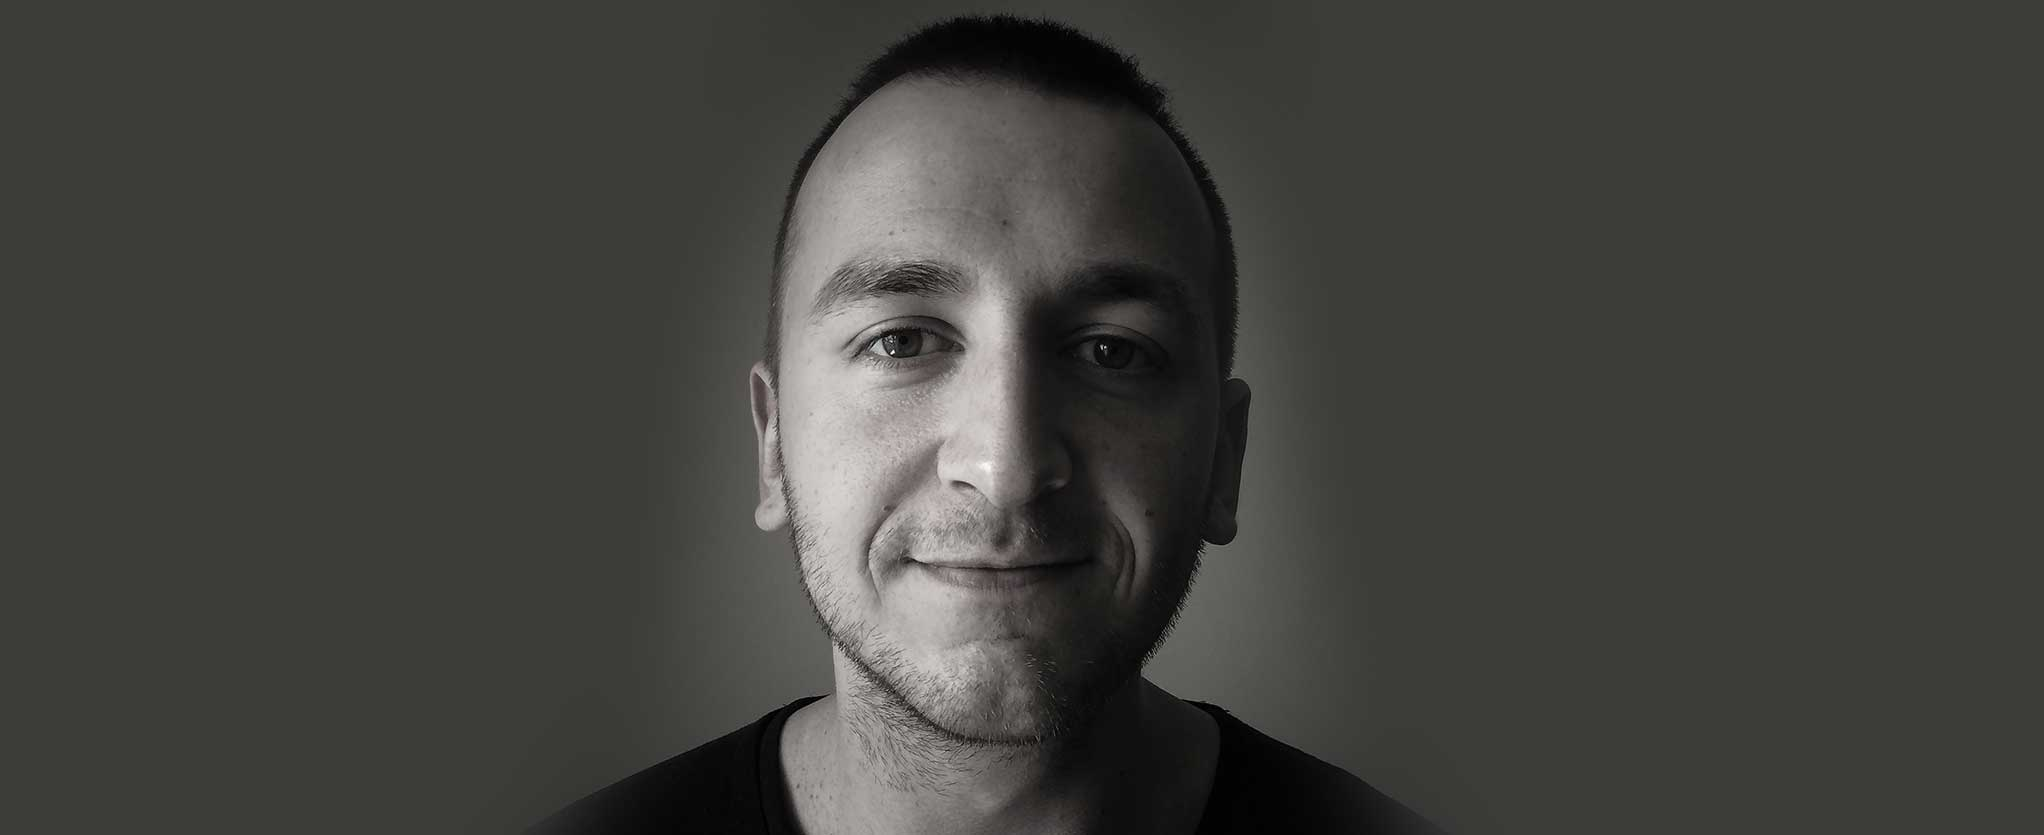 Meet Mateusz Dembek - Graphic Designer and Teacher from Poland